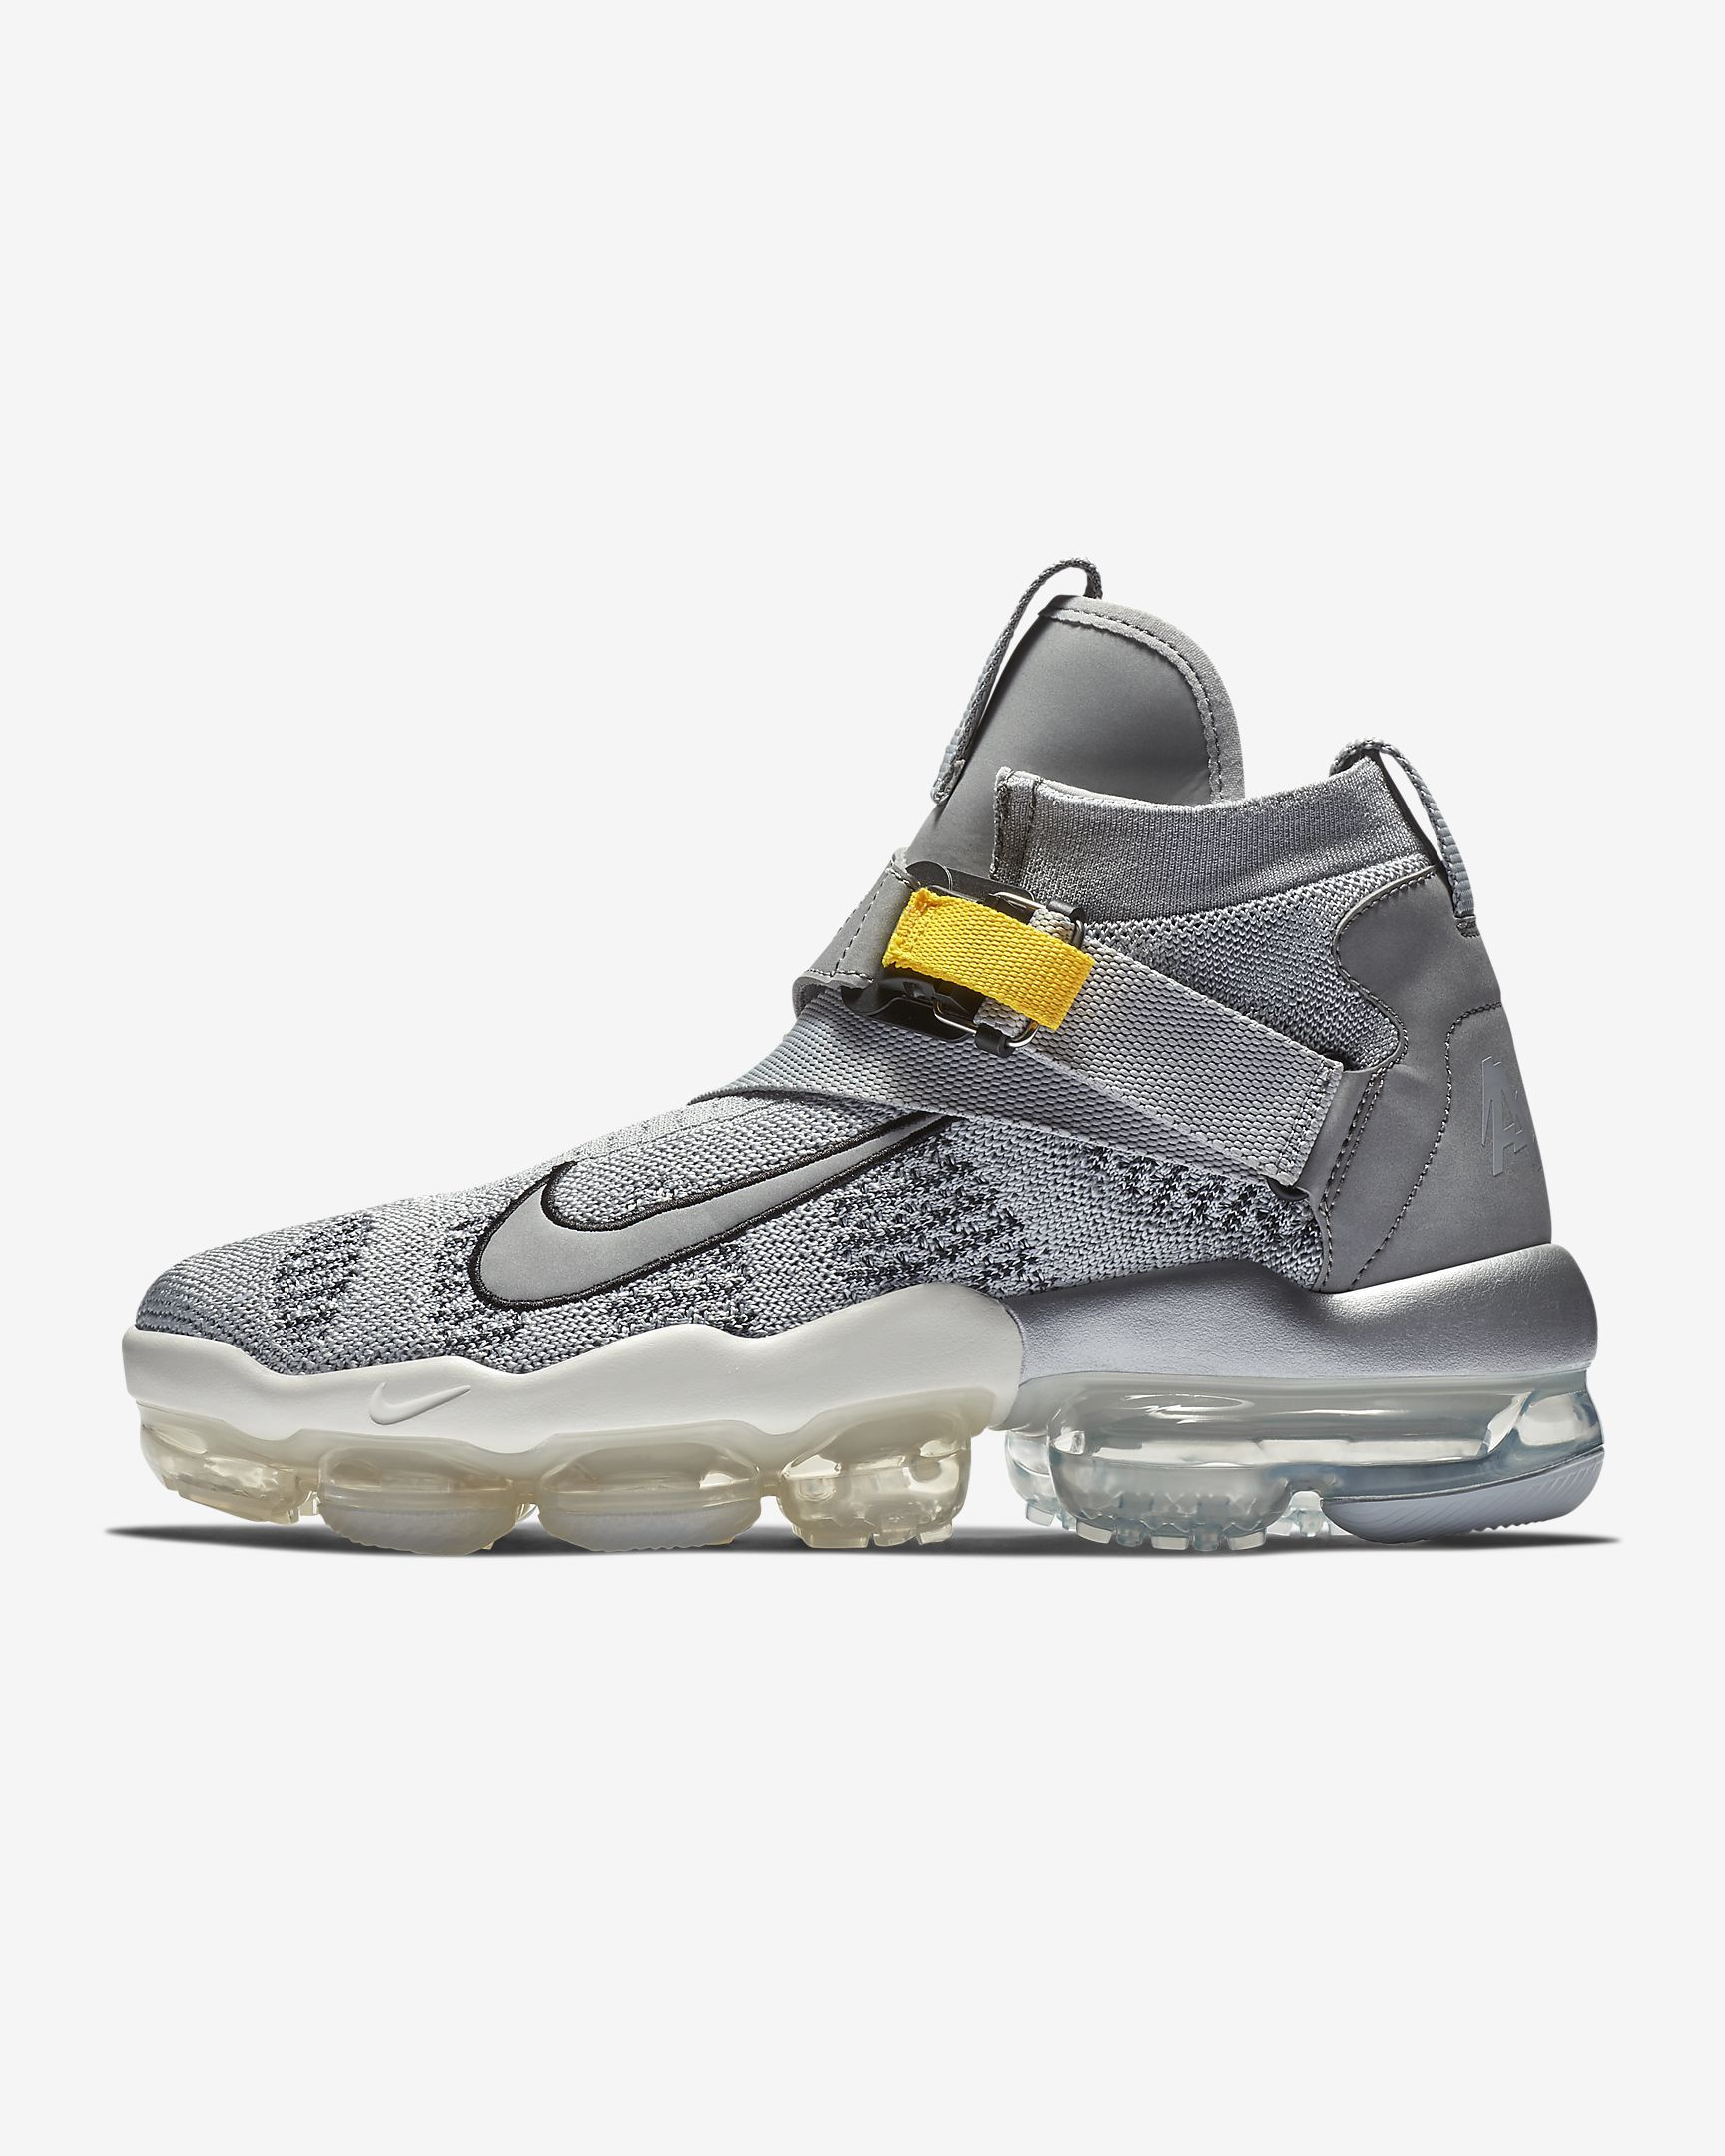 598ab487a5bc Air VaporMax Premier Flyknit Men s Shoe in 2019